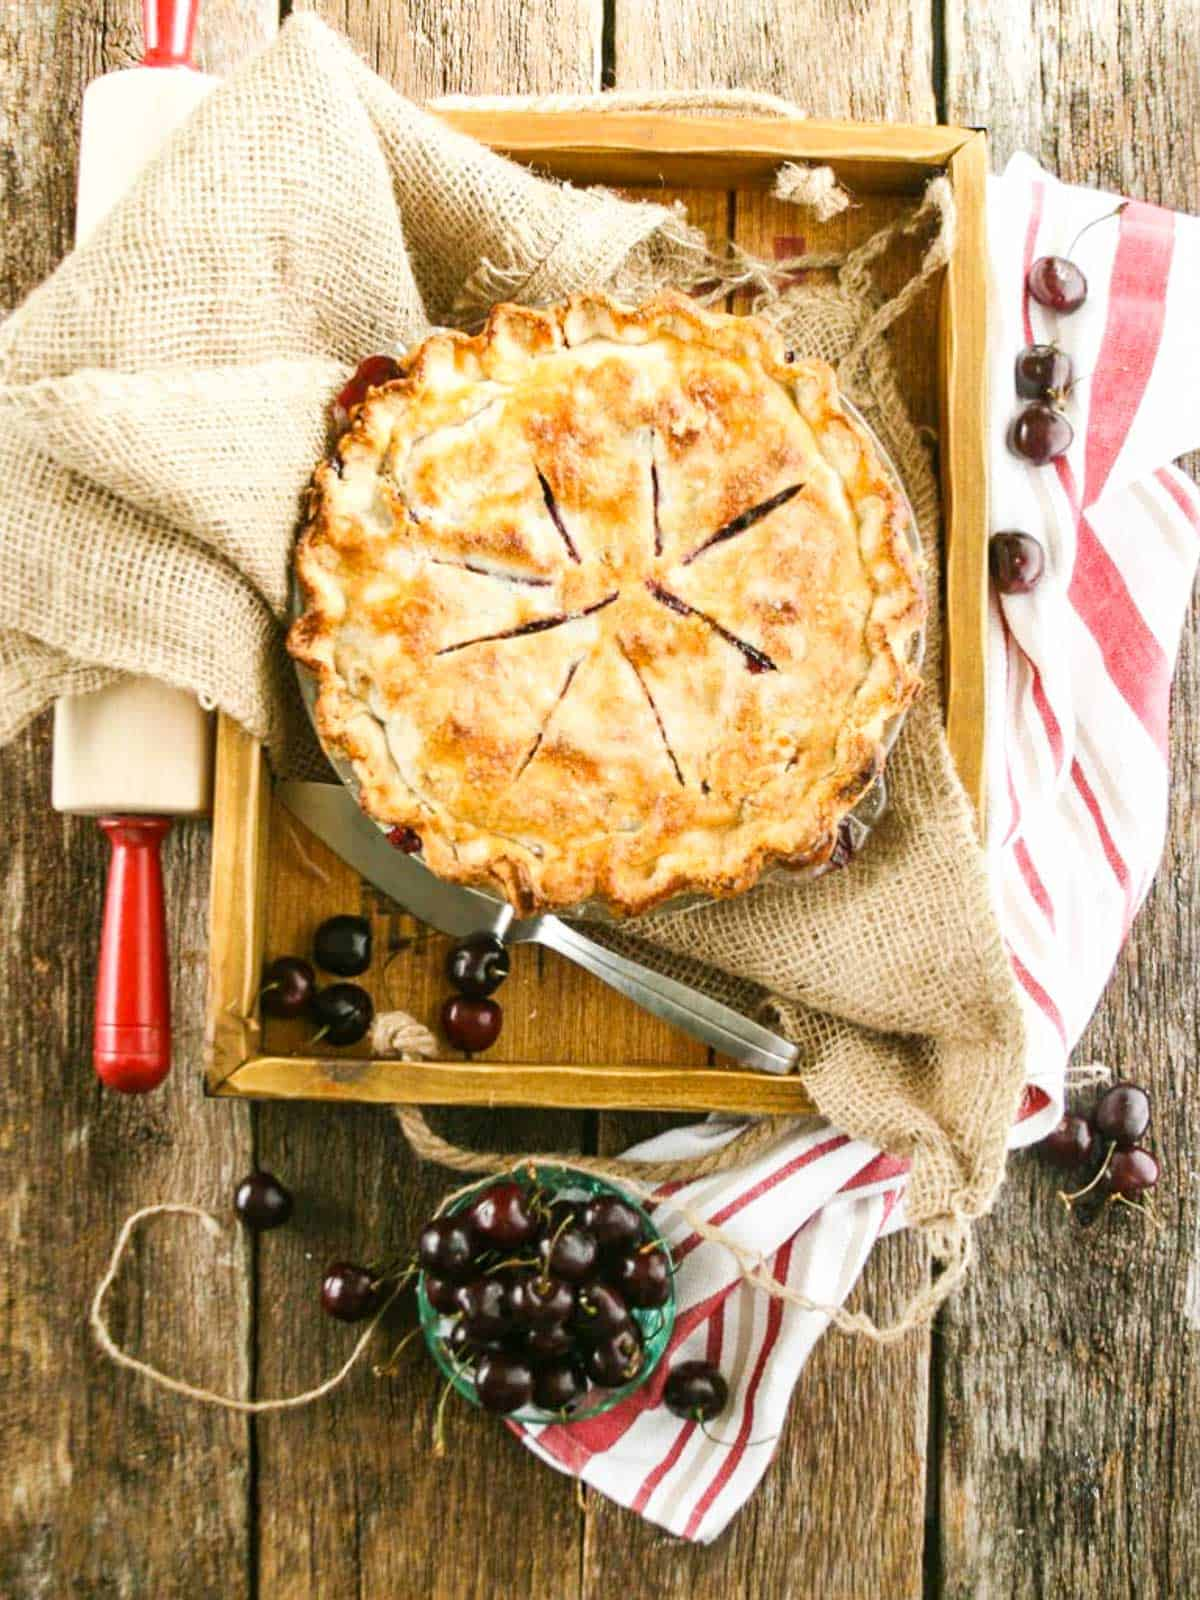 A large cherry pie with rolling pin and bowl of cherries ready to cut a slice.